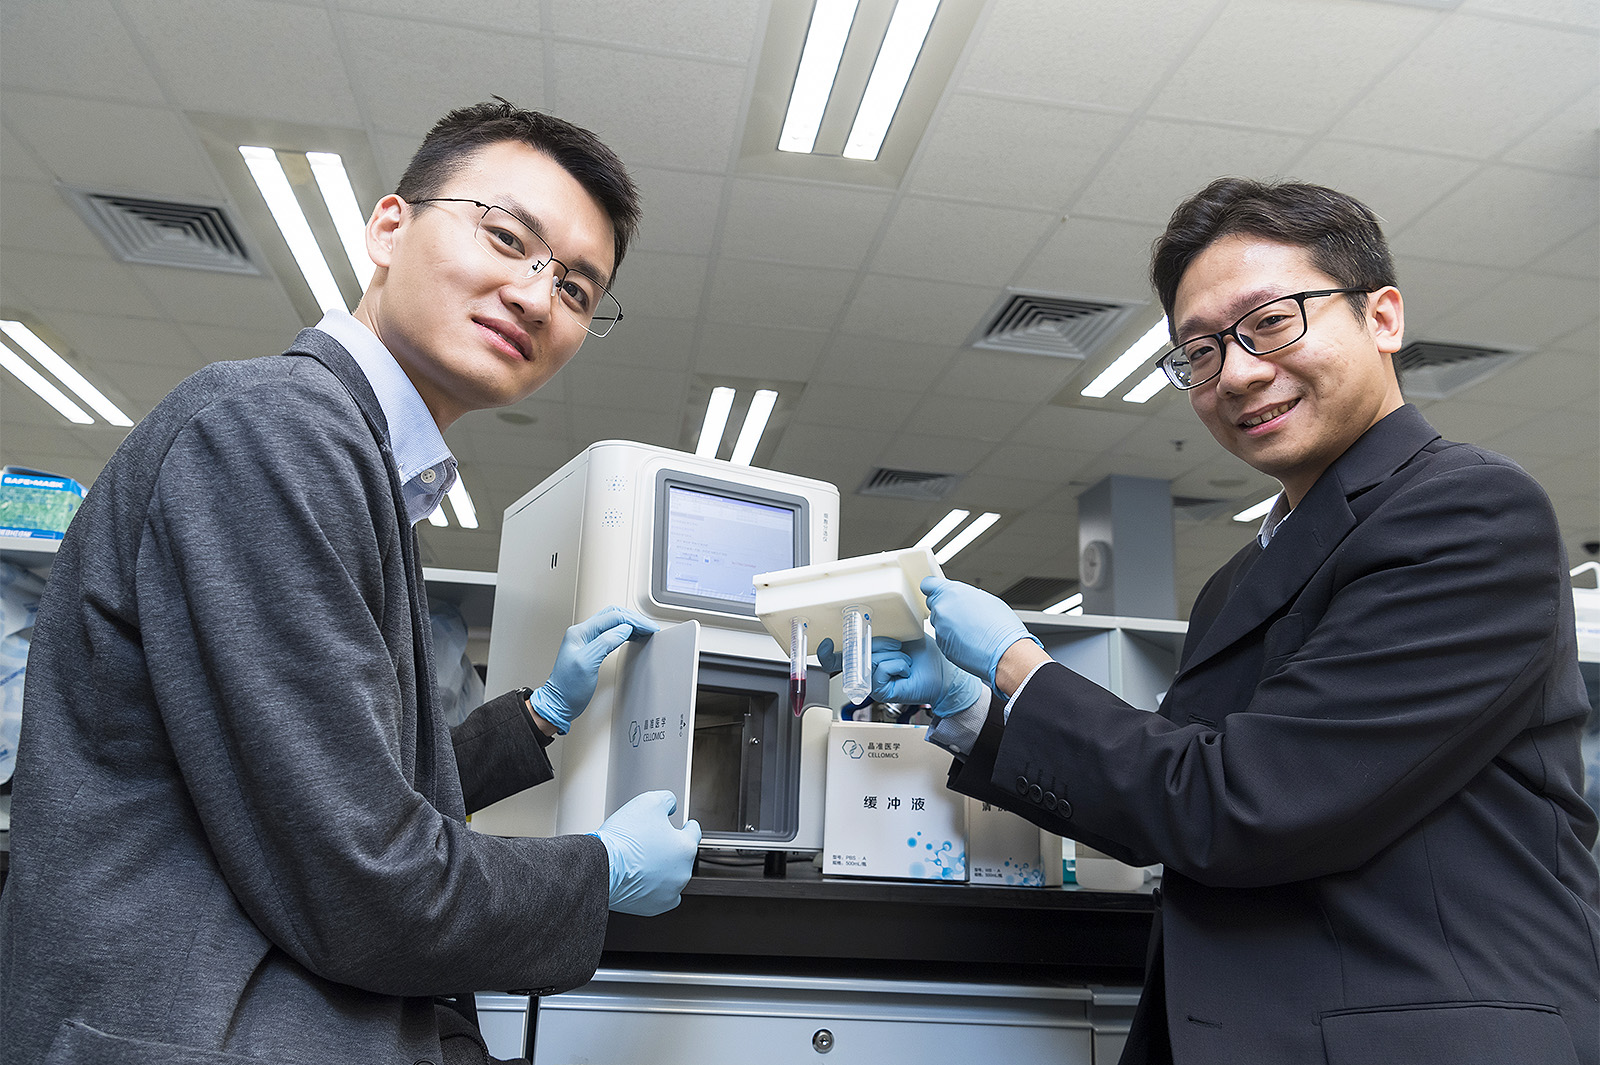 Dr Henry Zou Heng and Dr Edwin Yu Wai-kin, Senior Research Associates in the Department of Biomedical Sciences at CityU develop technology that can accurately perform early screening for cancer cells and effectively monitor disease status.